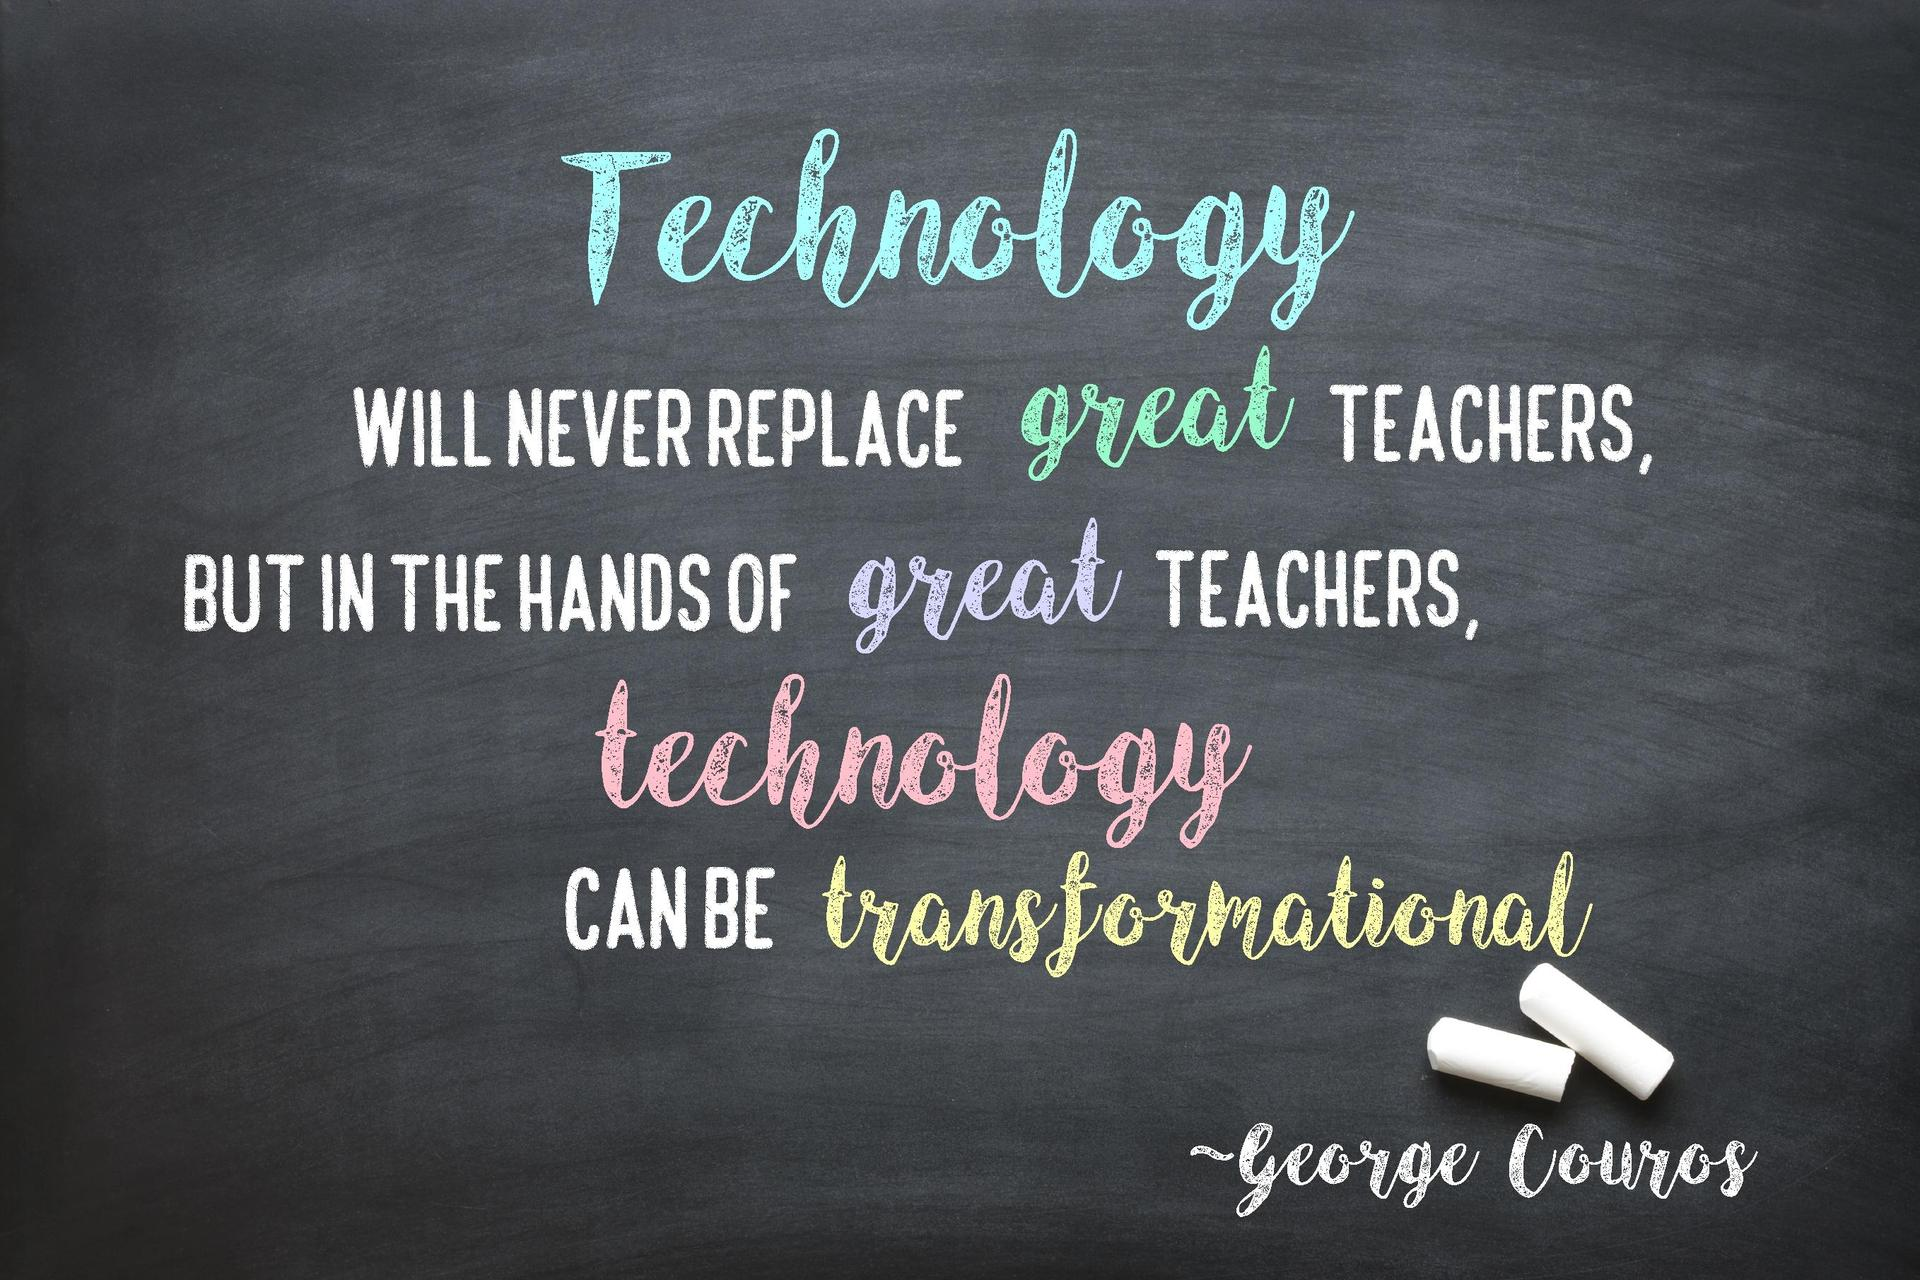 Technology will never replace great teachers, but in the hands of great teachers, technology can be transformational.  George Couros.